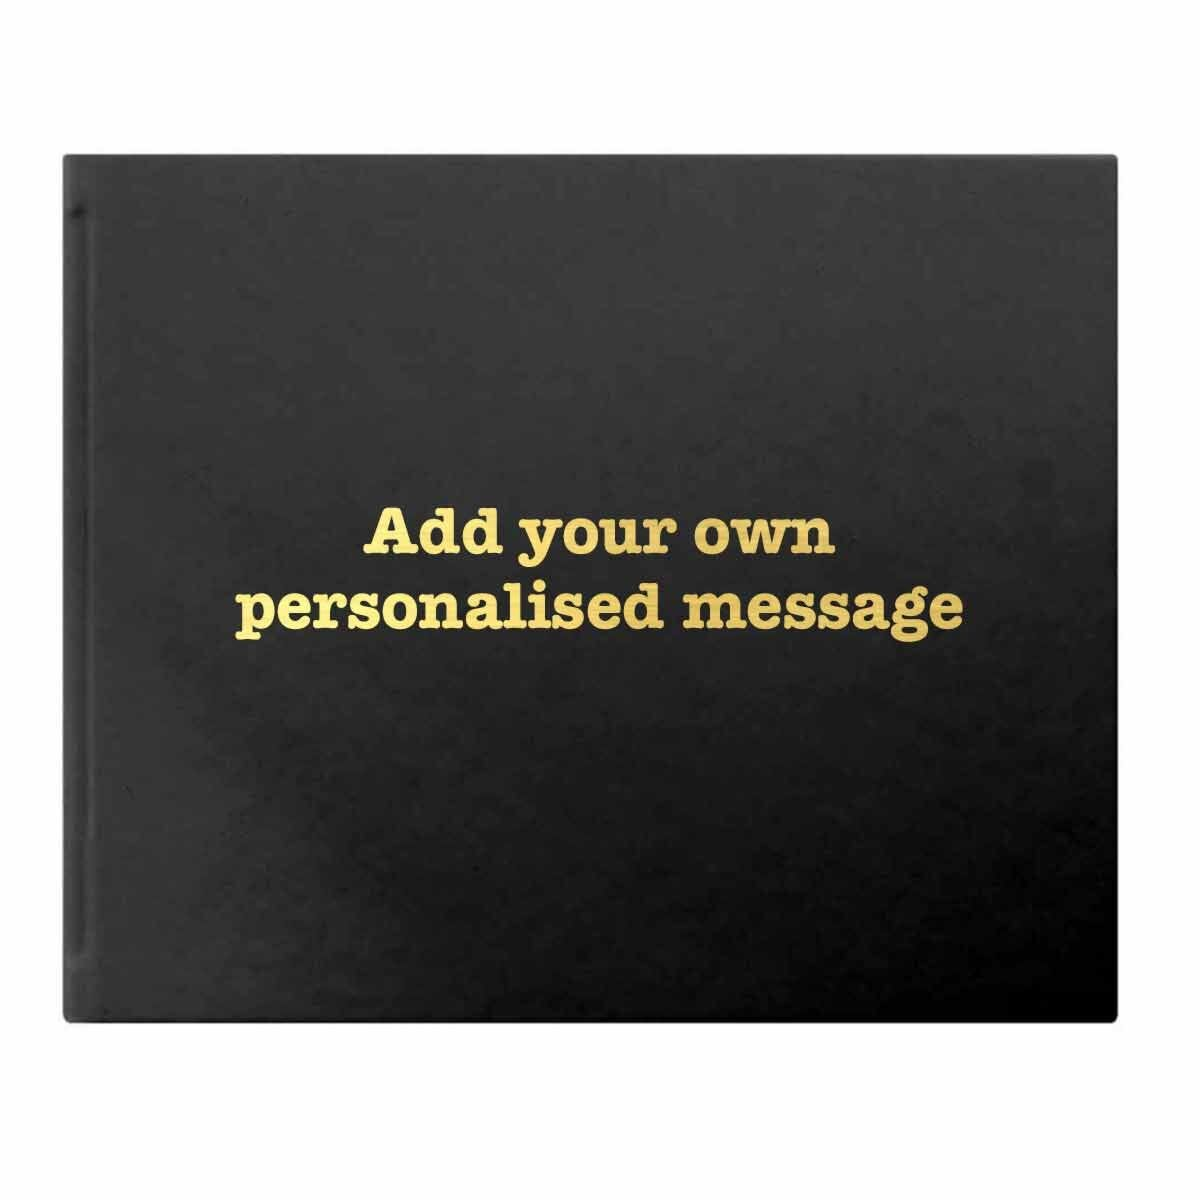 Letts Dazzle Personalised Occasions Typewriter Font Black Gold